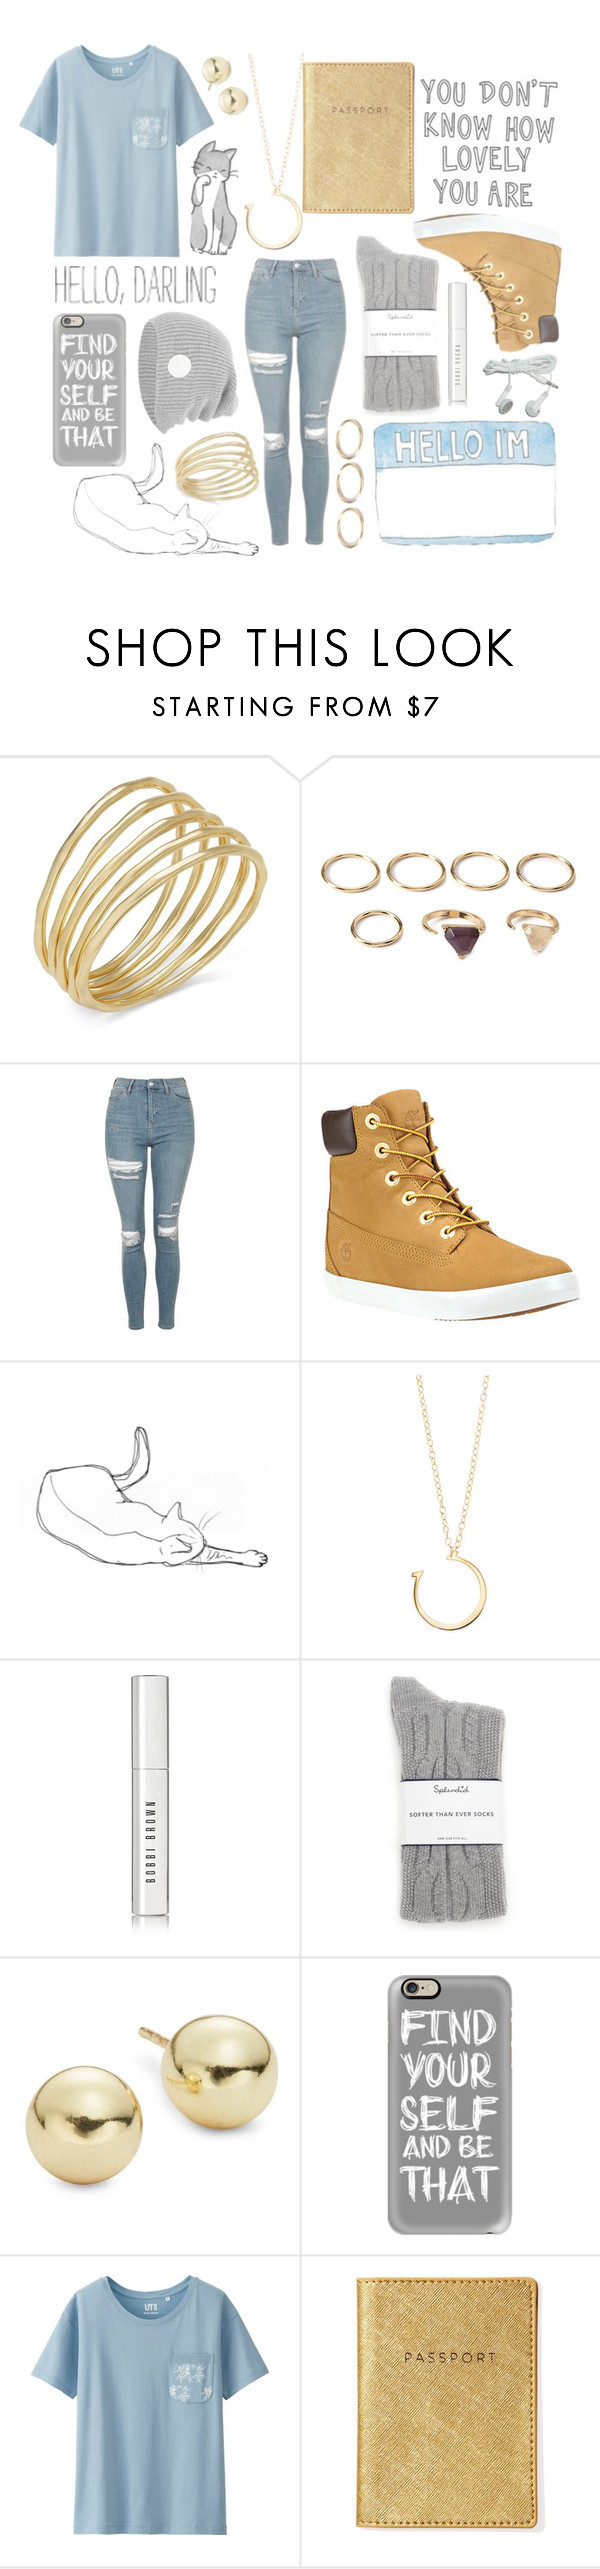 """""""Blue and grey"""" by winimae ❤ liked on Polyvore featuring Lauren Ralph Lauren, Forever 21, Topshop, Timberland, Jennifer Zeuner, Bobbi Brown Cosmetics, Splendid, Lord & Taylor, Casetify and Uniqlo"""